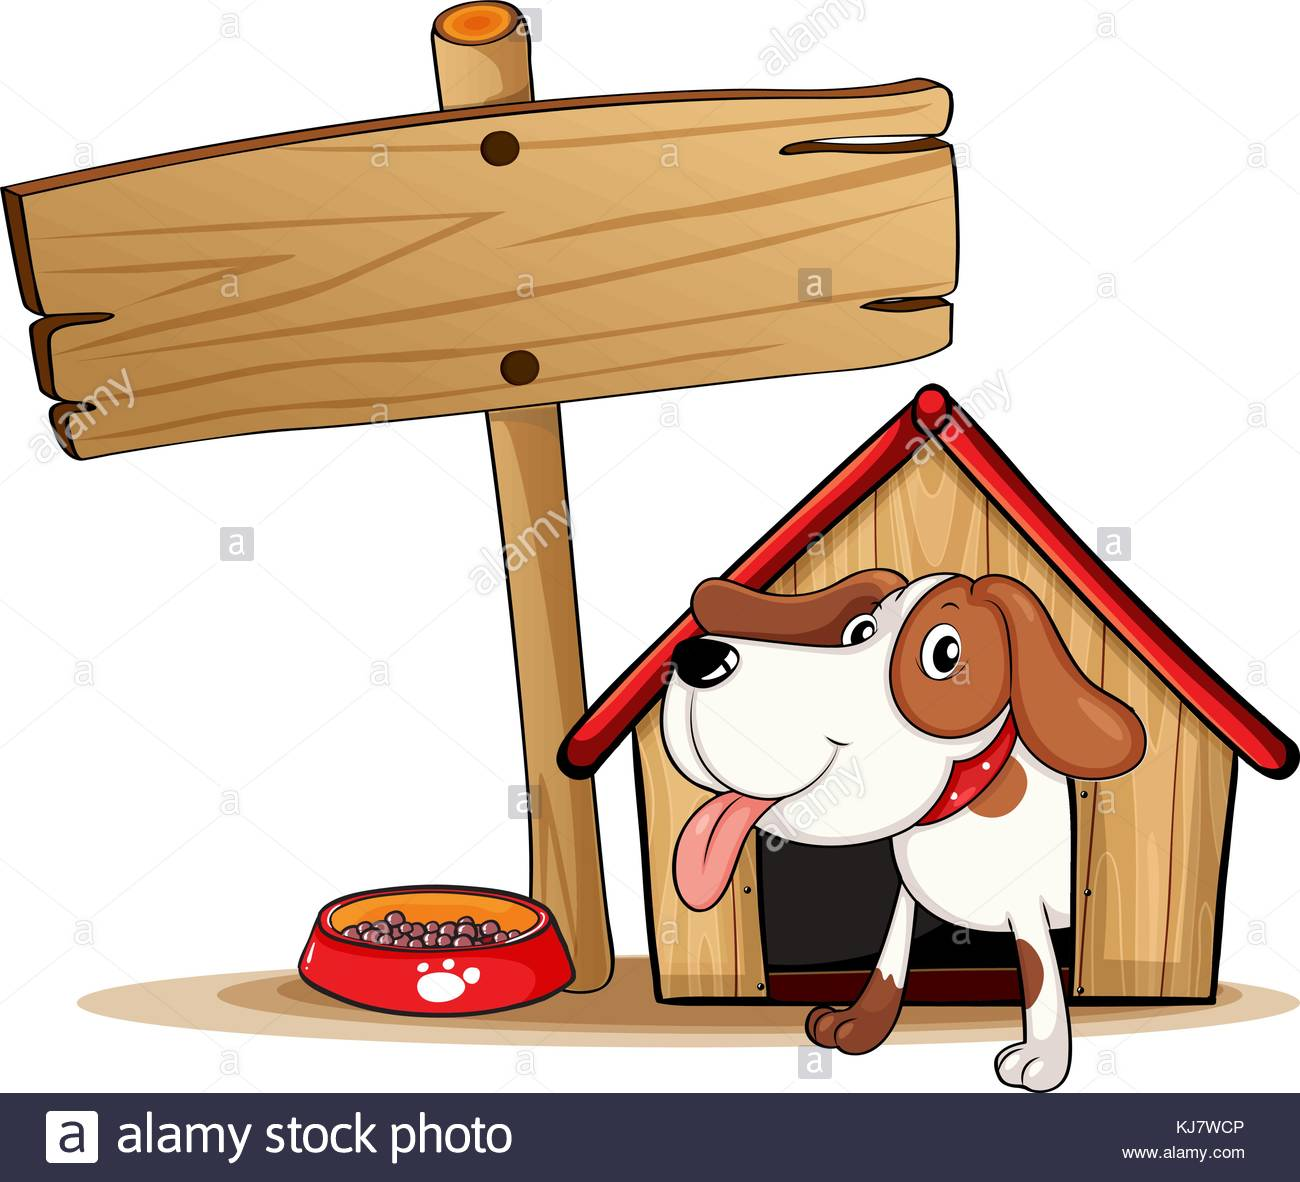 1300x1182 Wooden Doghouse Stock Photos Amp Wooden Doghouse Stock Images